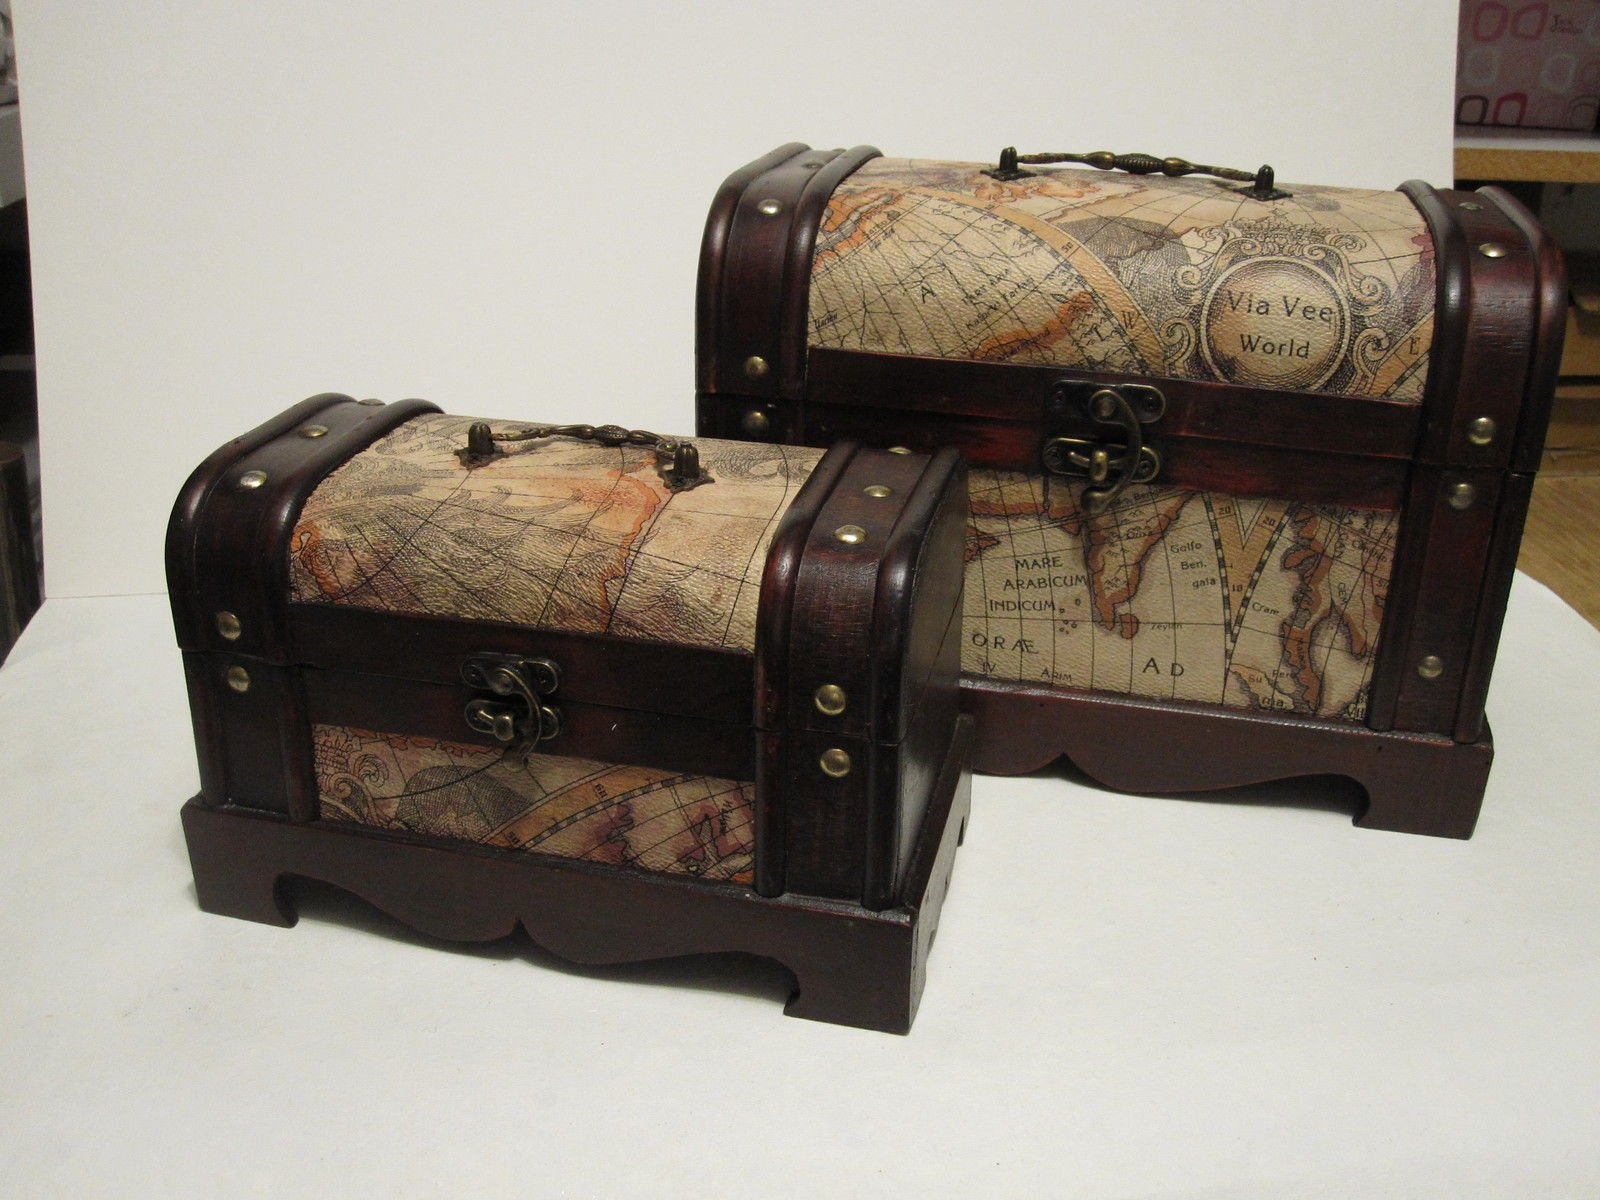 Antique Looking Old World Map Wooden Trunk/Box Set of 2 by ubc